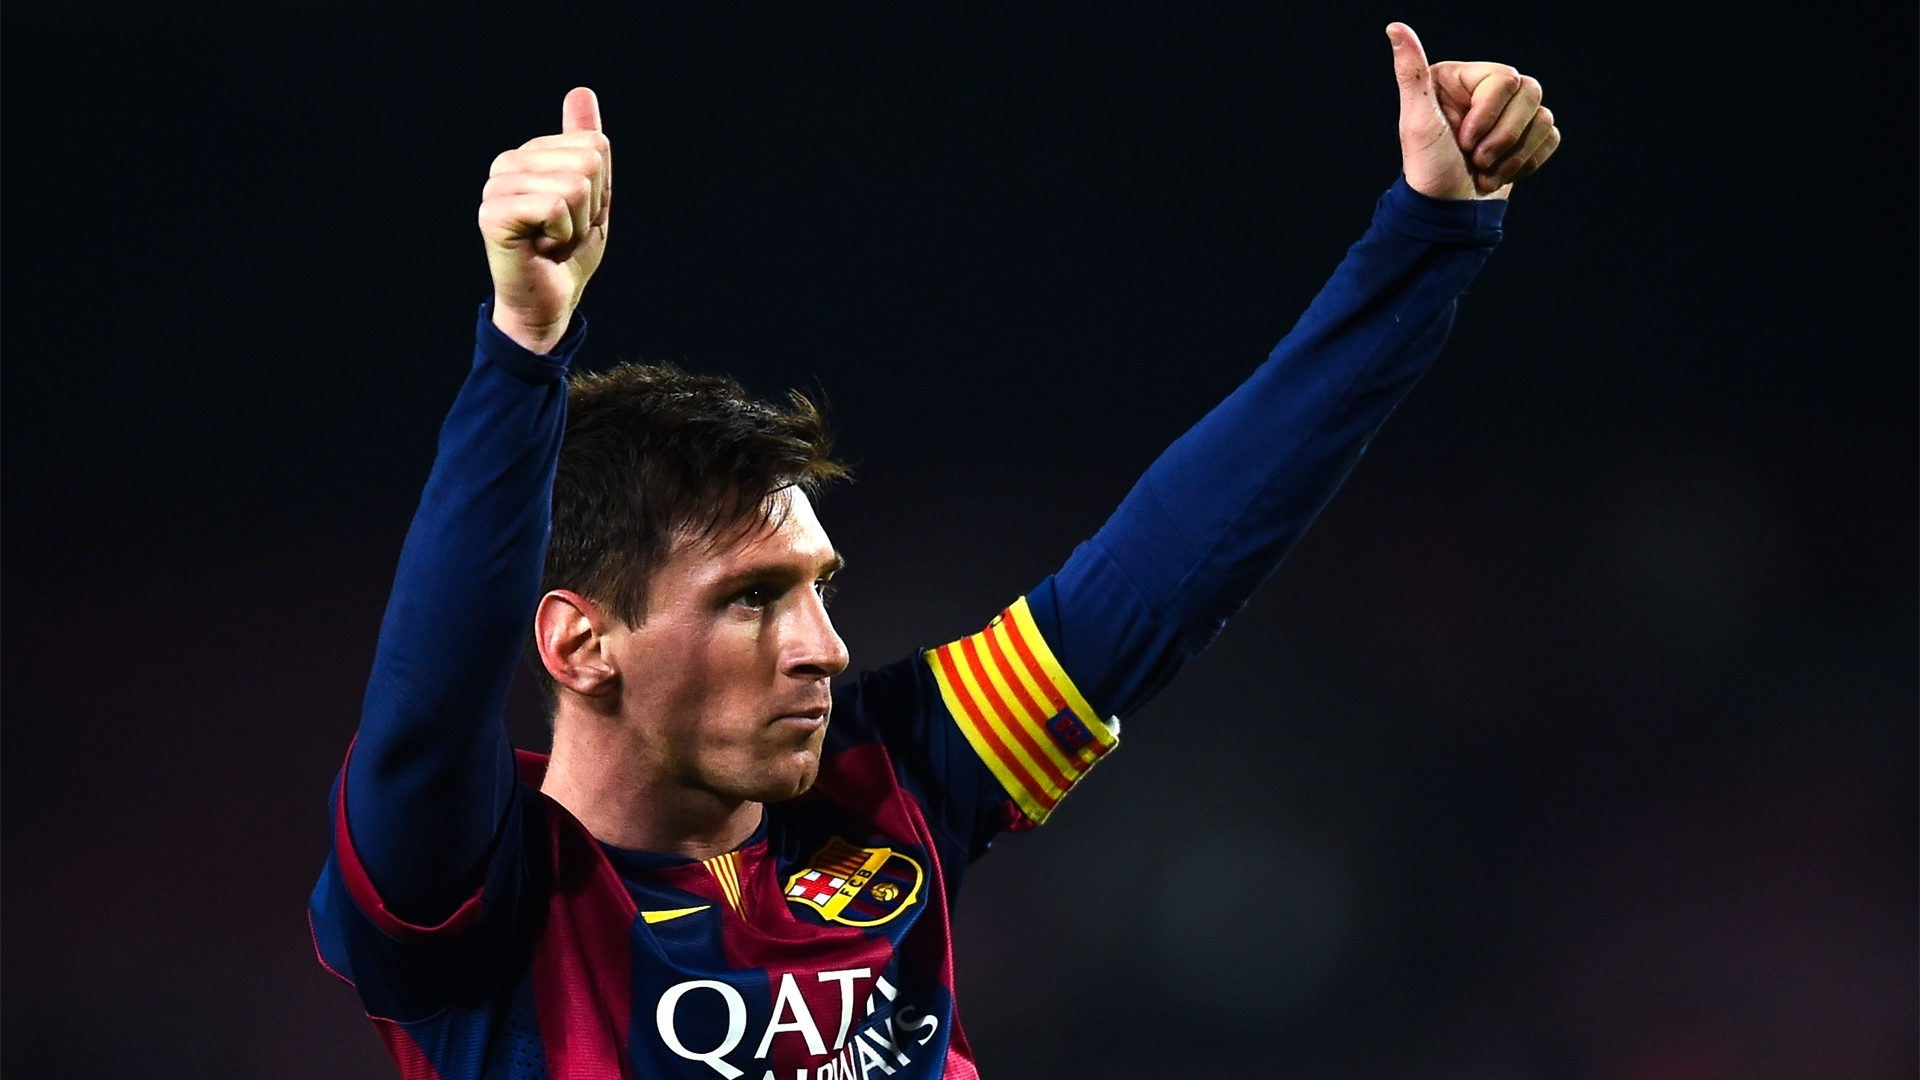 lionel messi wallpapers hd download free | pixelstalk